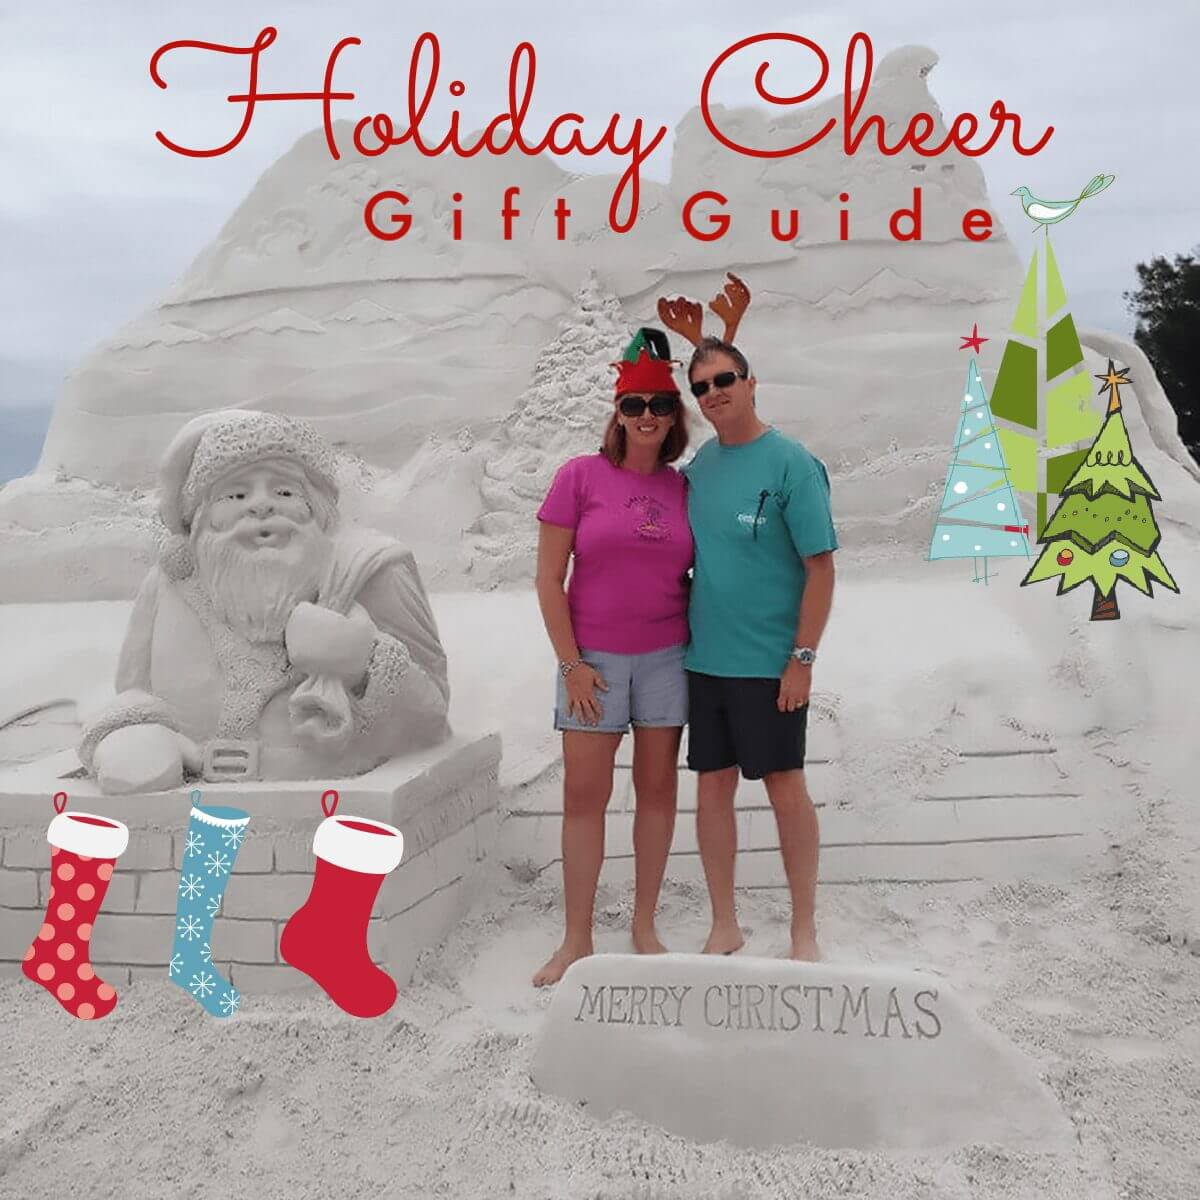 Deb & Dan with Santa Sculpture with Holiday Cheer Gift Guide Overlay